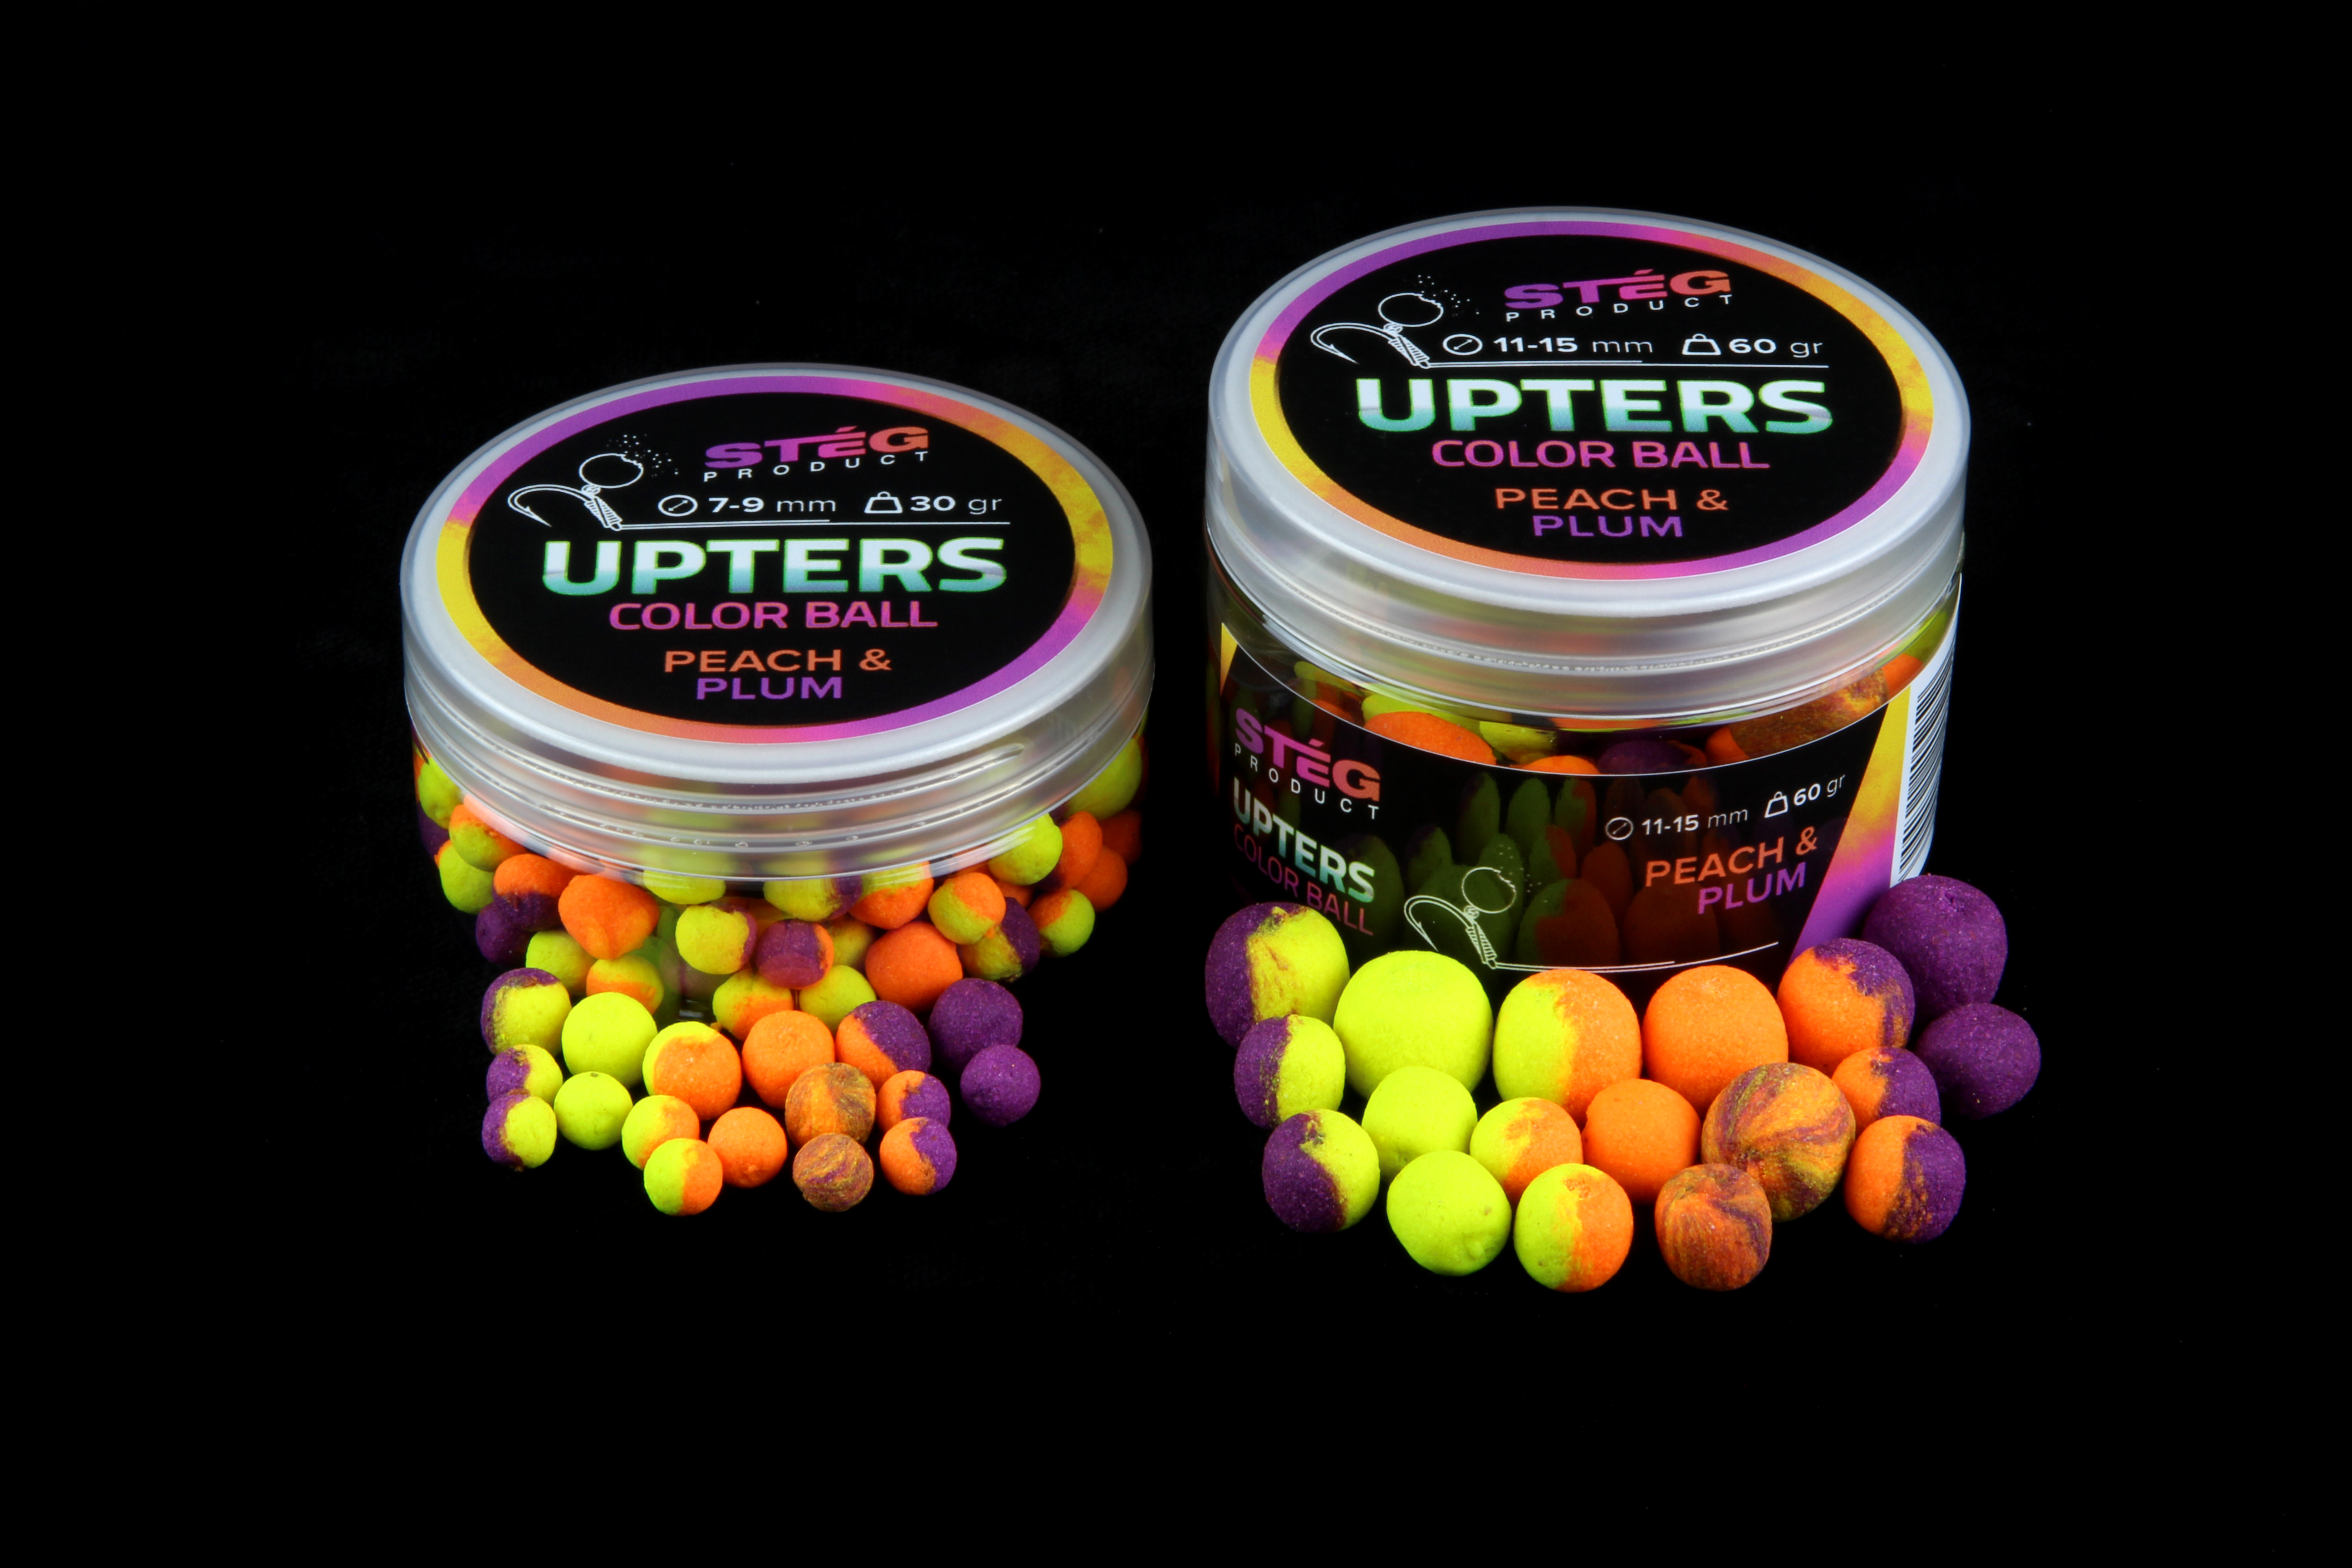 STÉG Upters Color Ball 11-15mm, 30g - PEACH PLUM